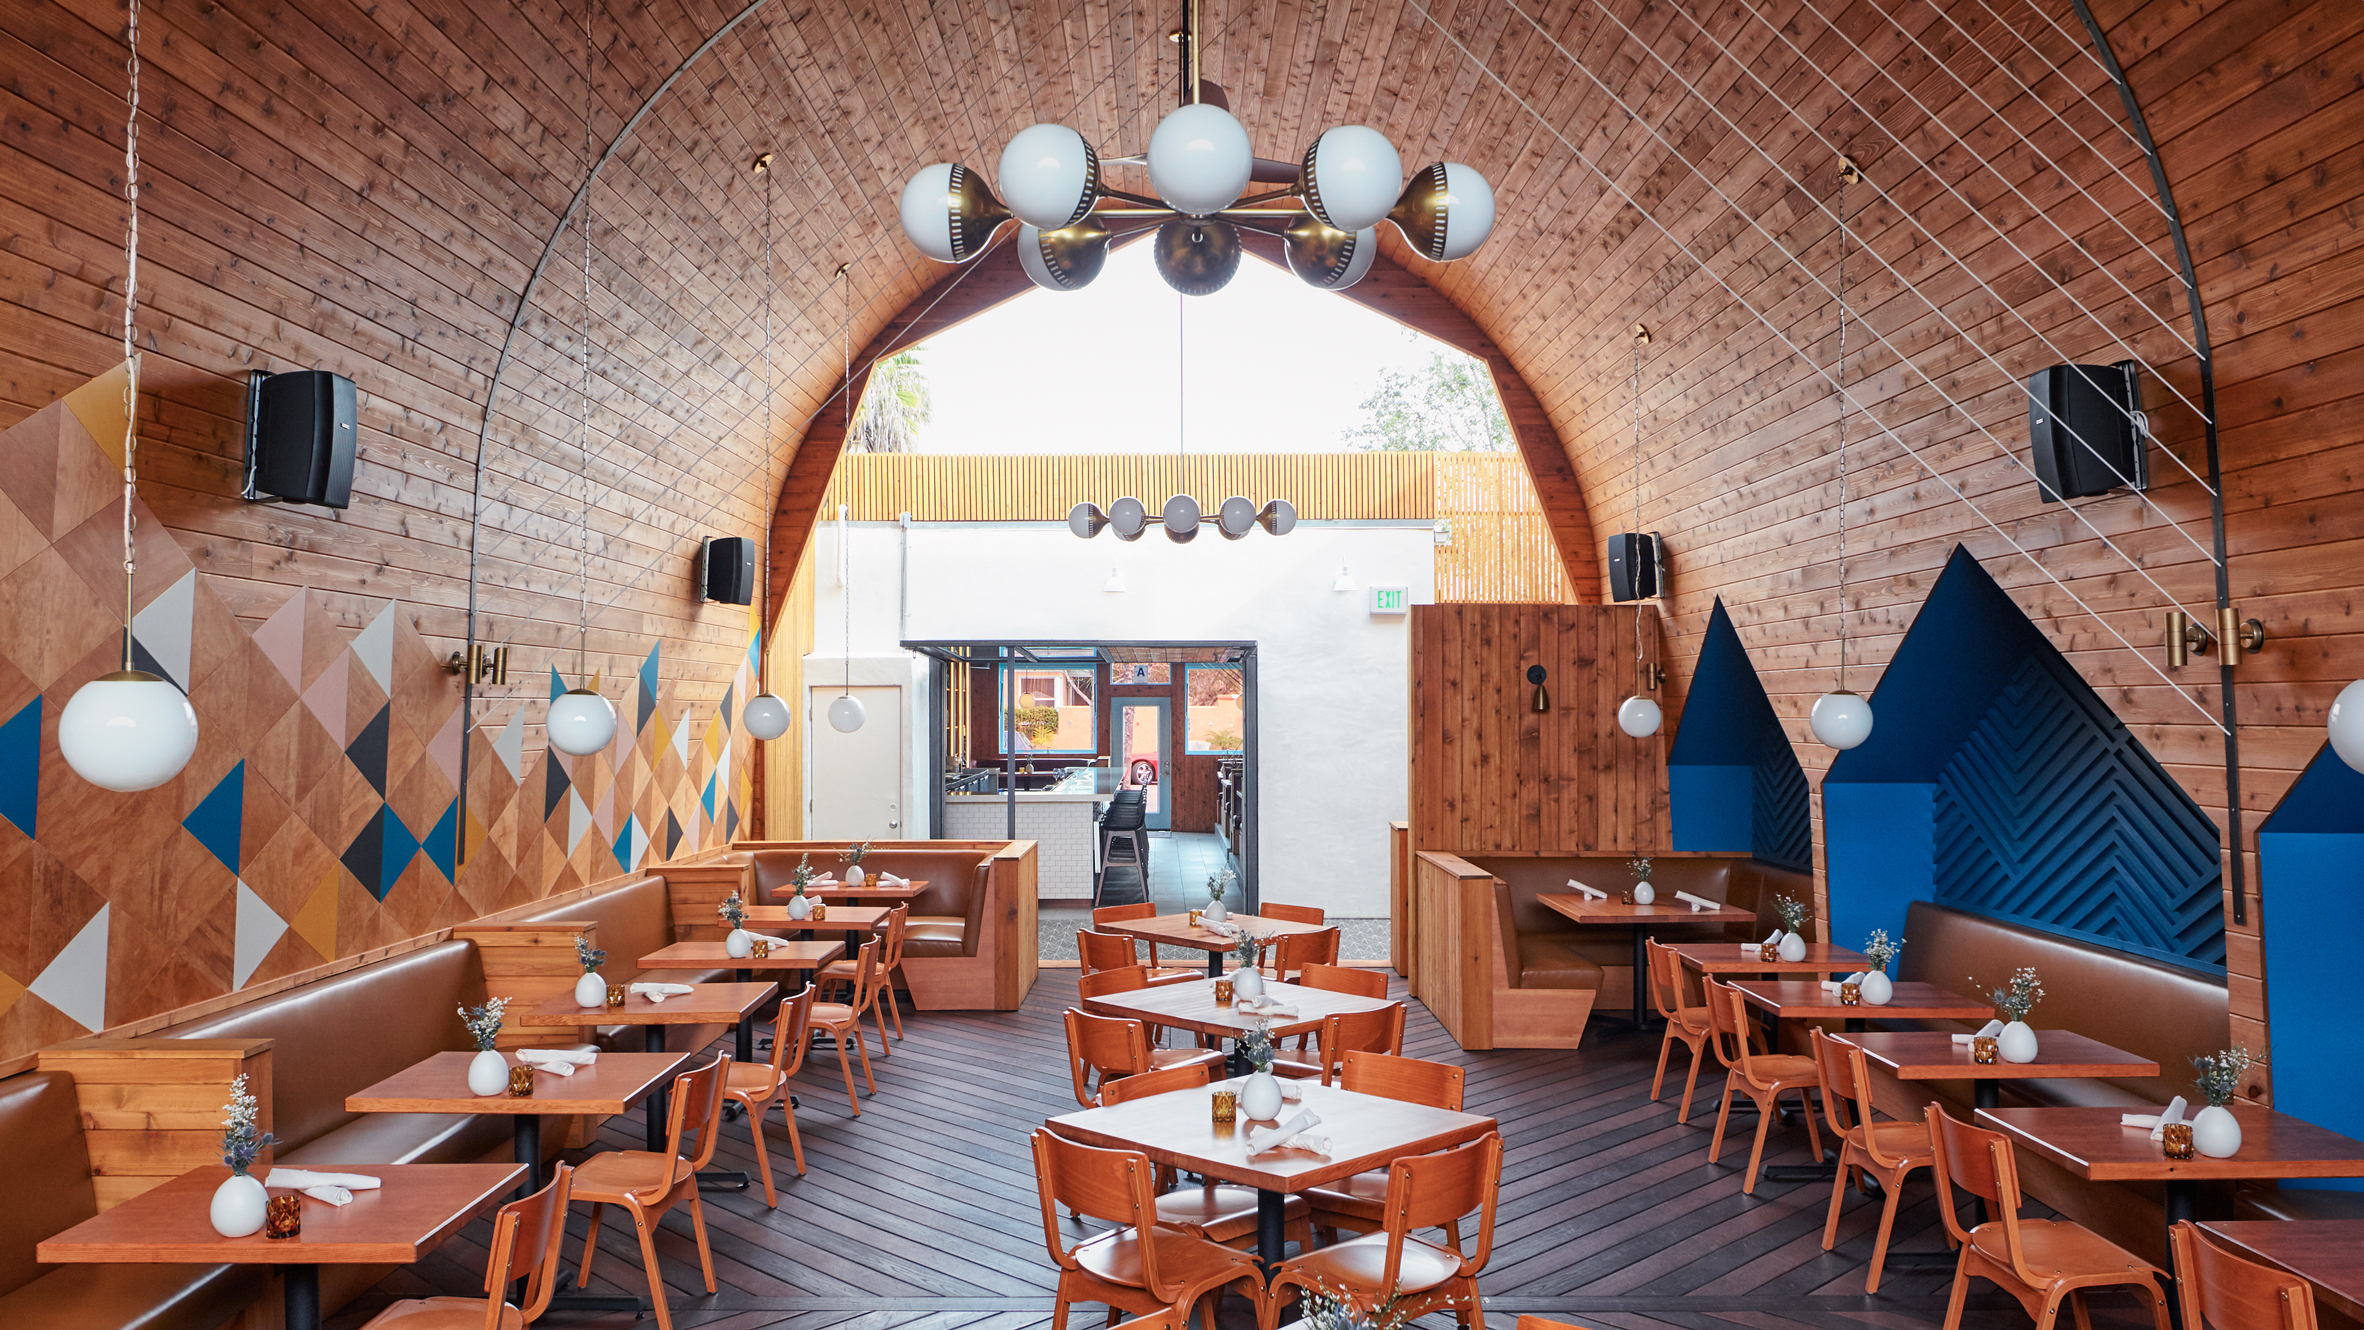 Restaurant Carved From Former Nightclub Offers Japan And Nordic